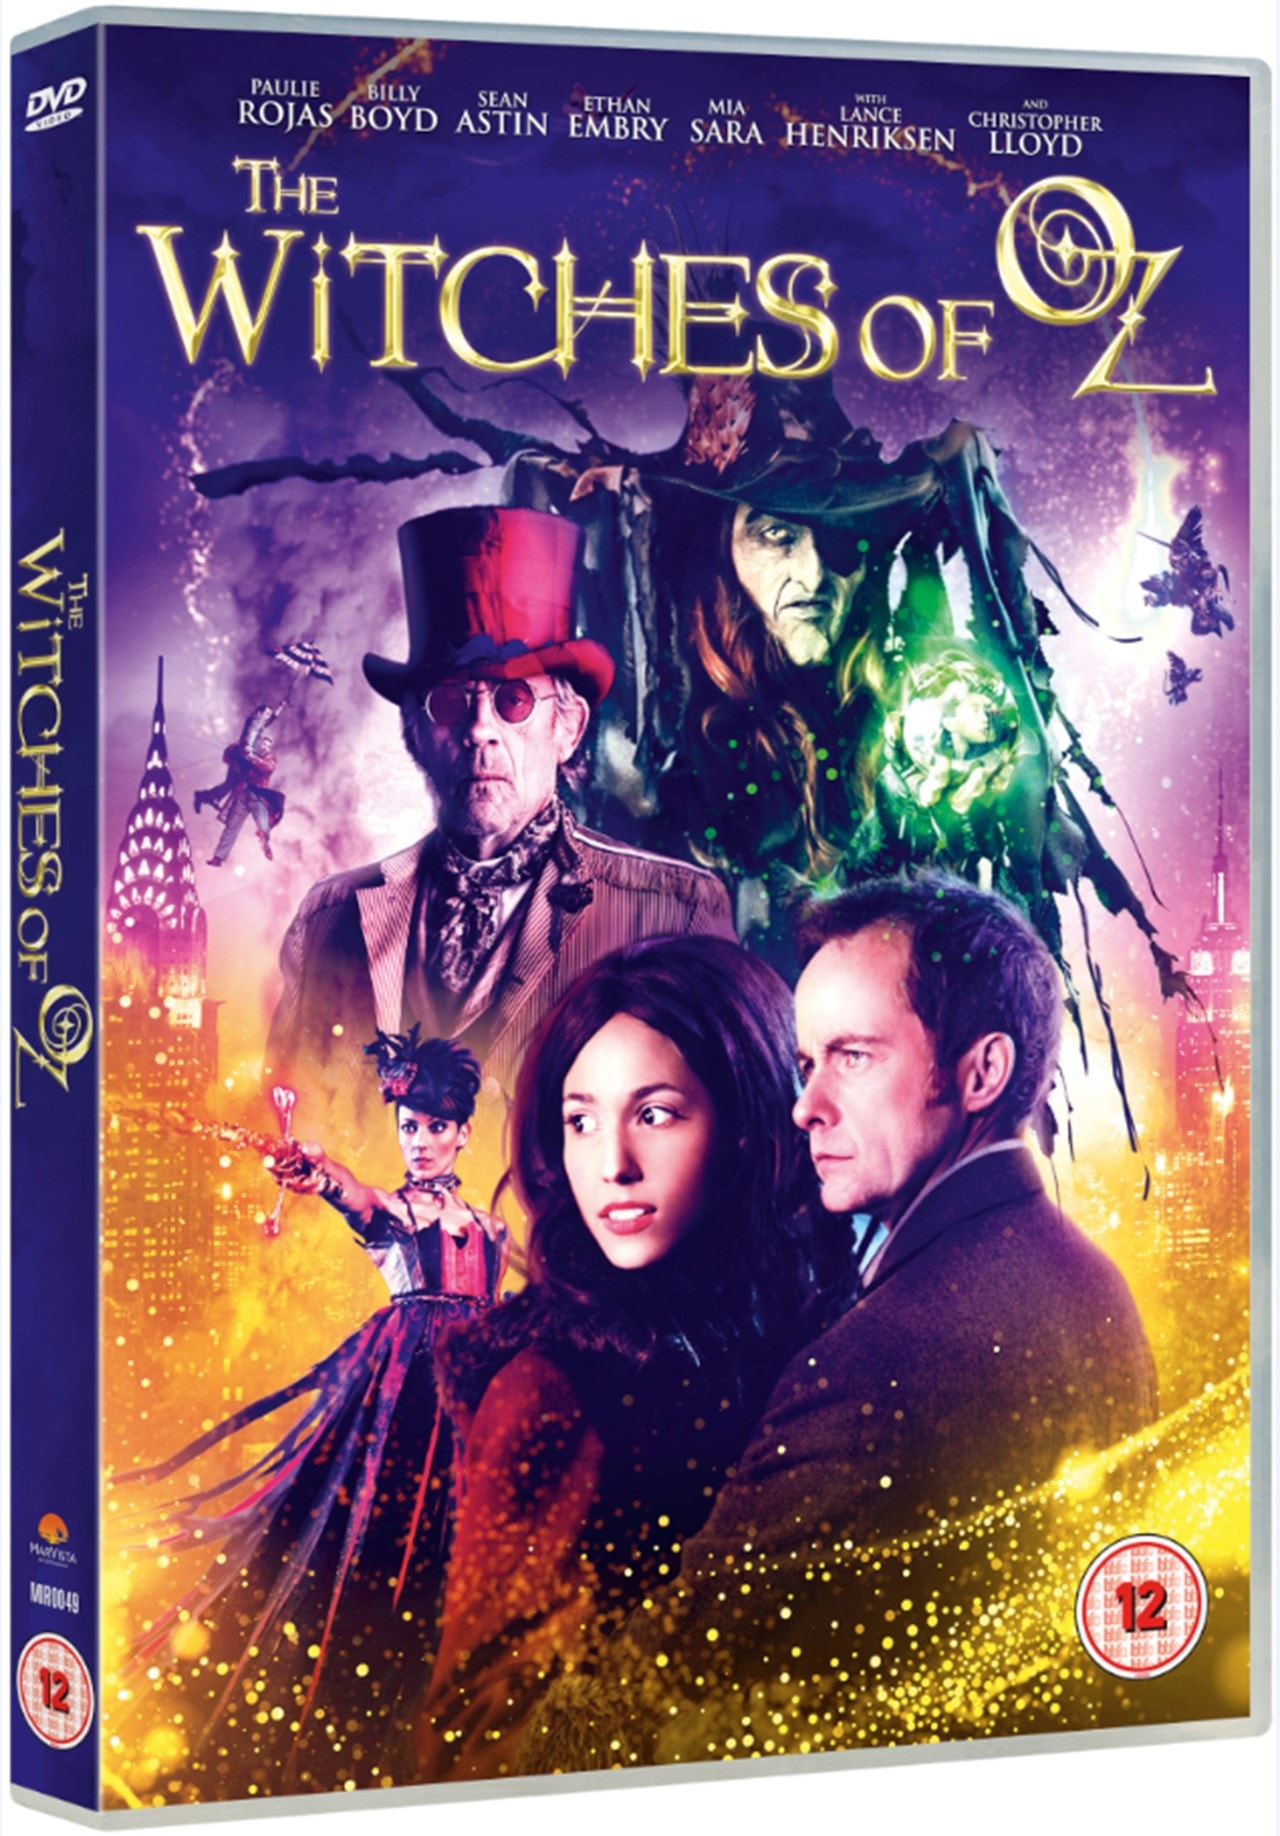 The Witches of Oz - 2